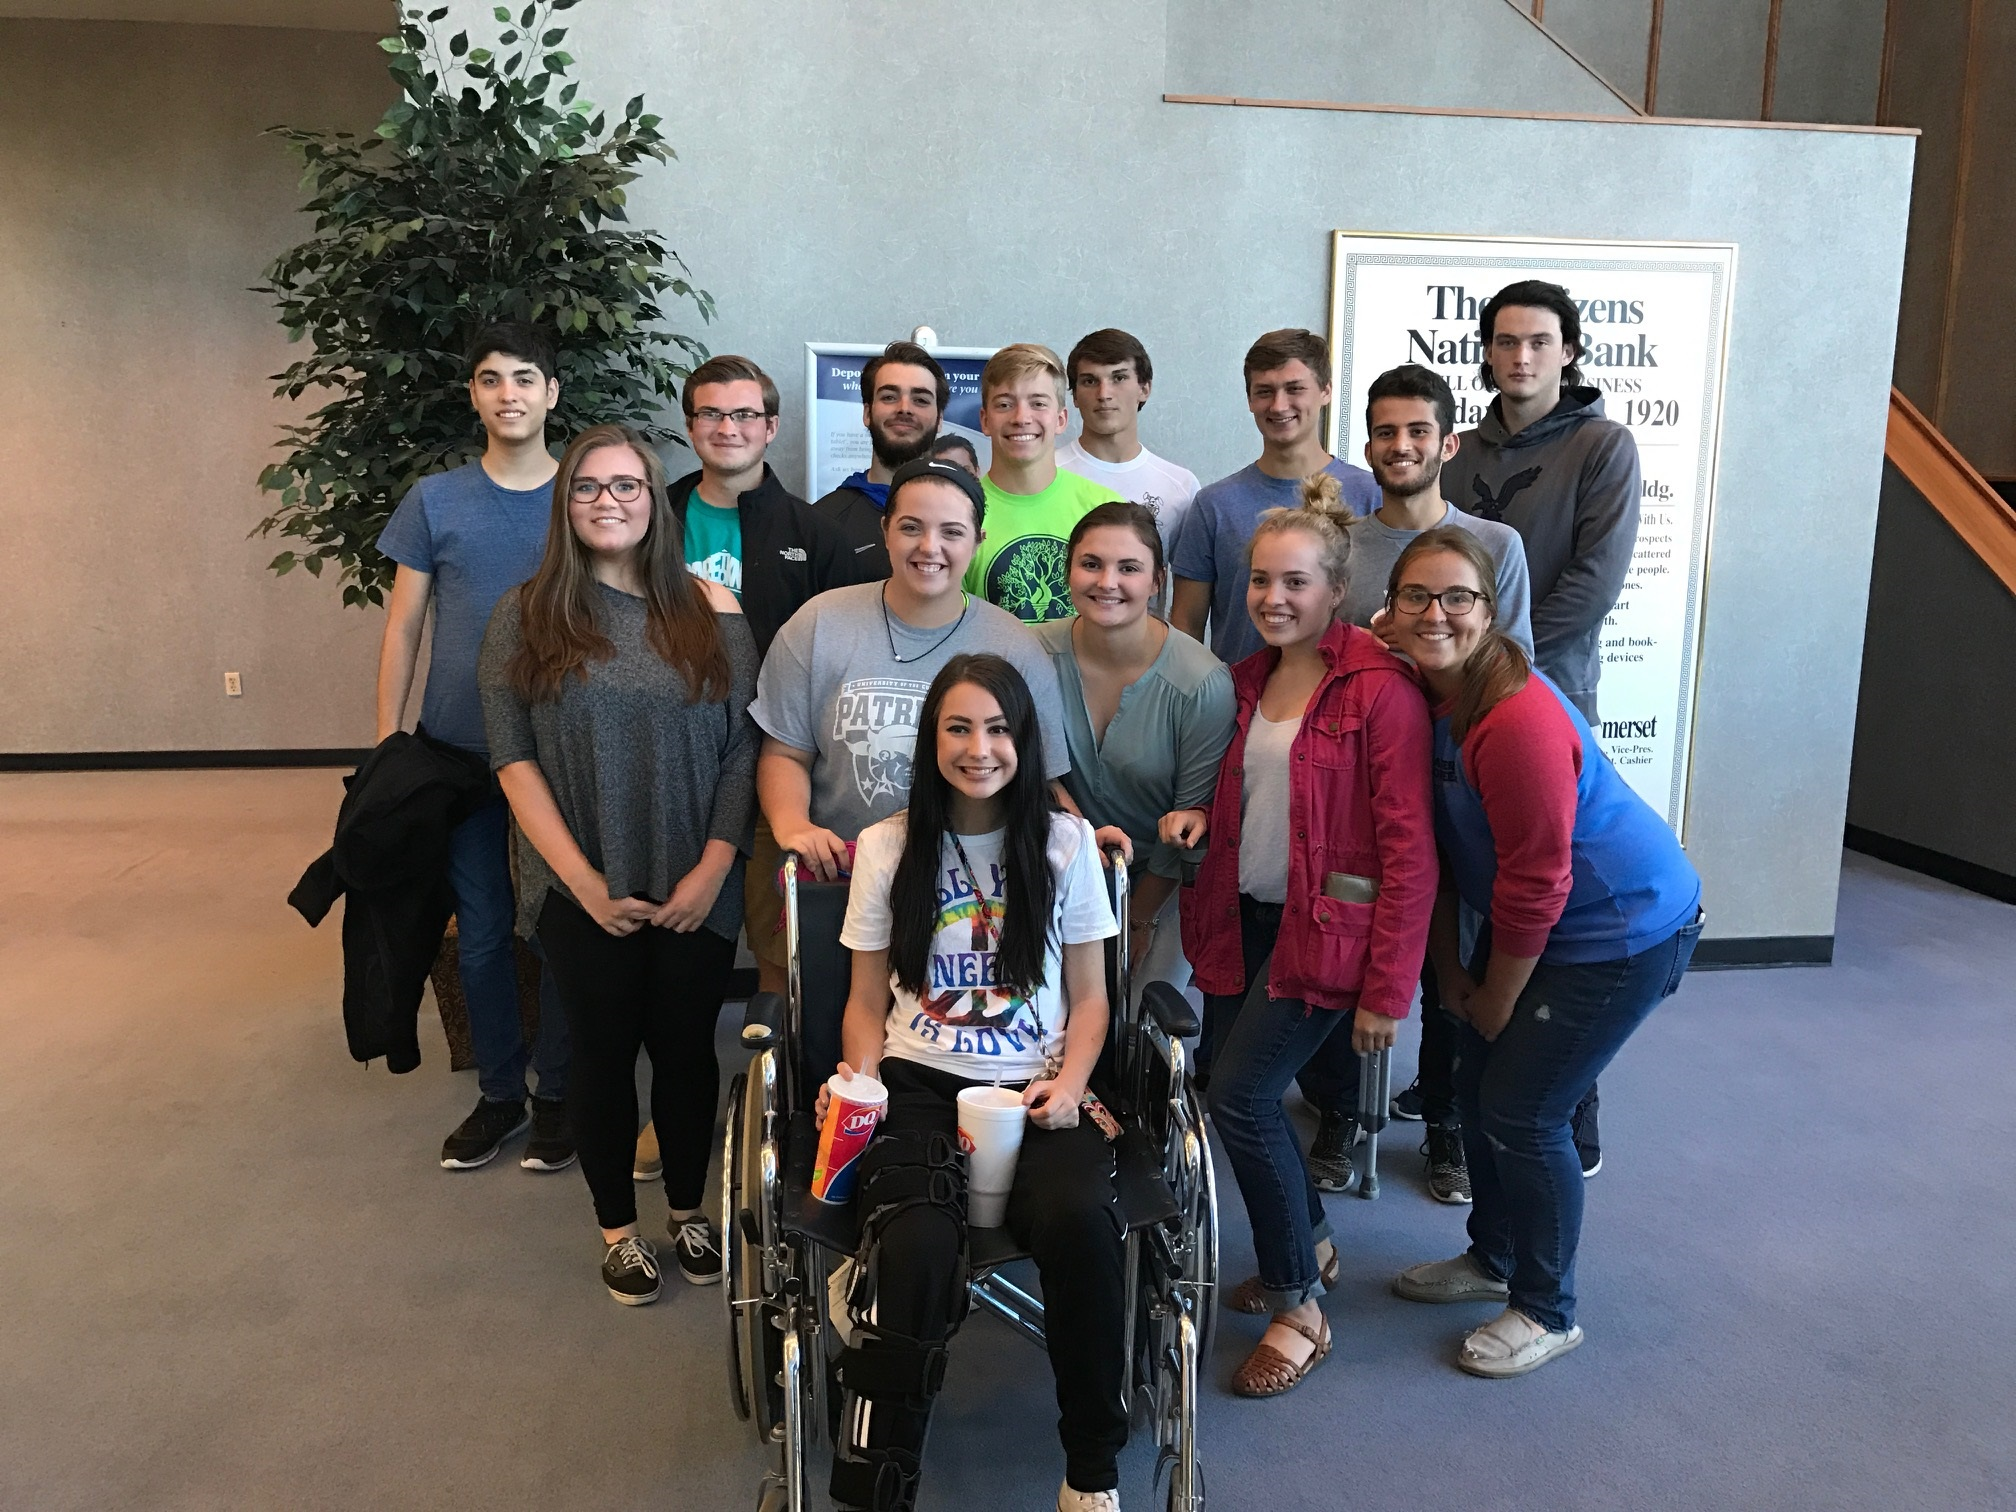 Advanced Marketing Class tours Citizens National Bank